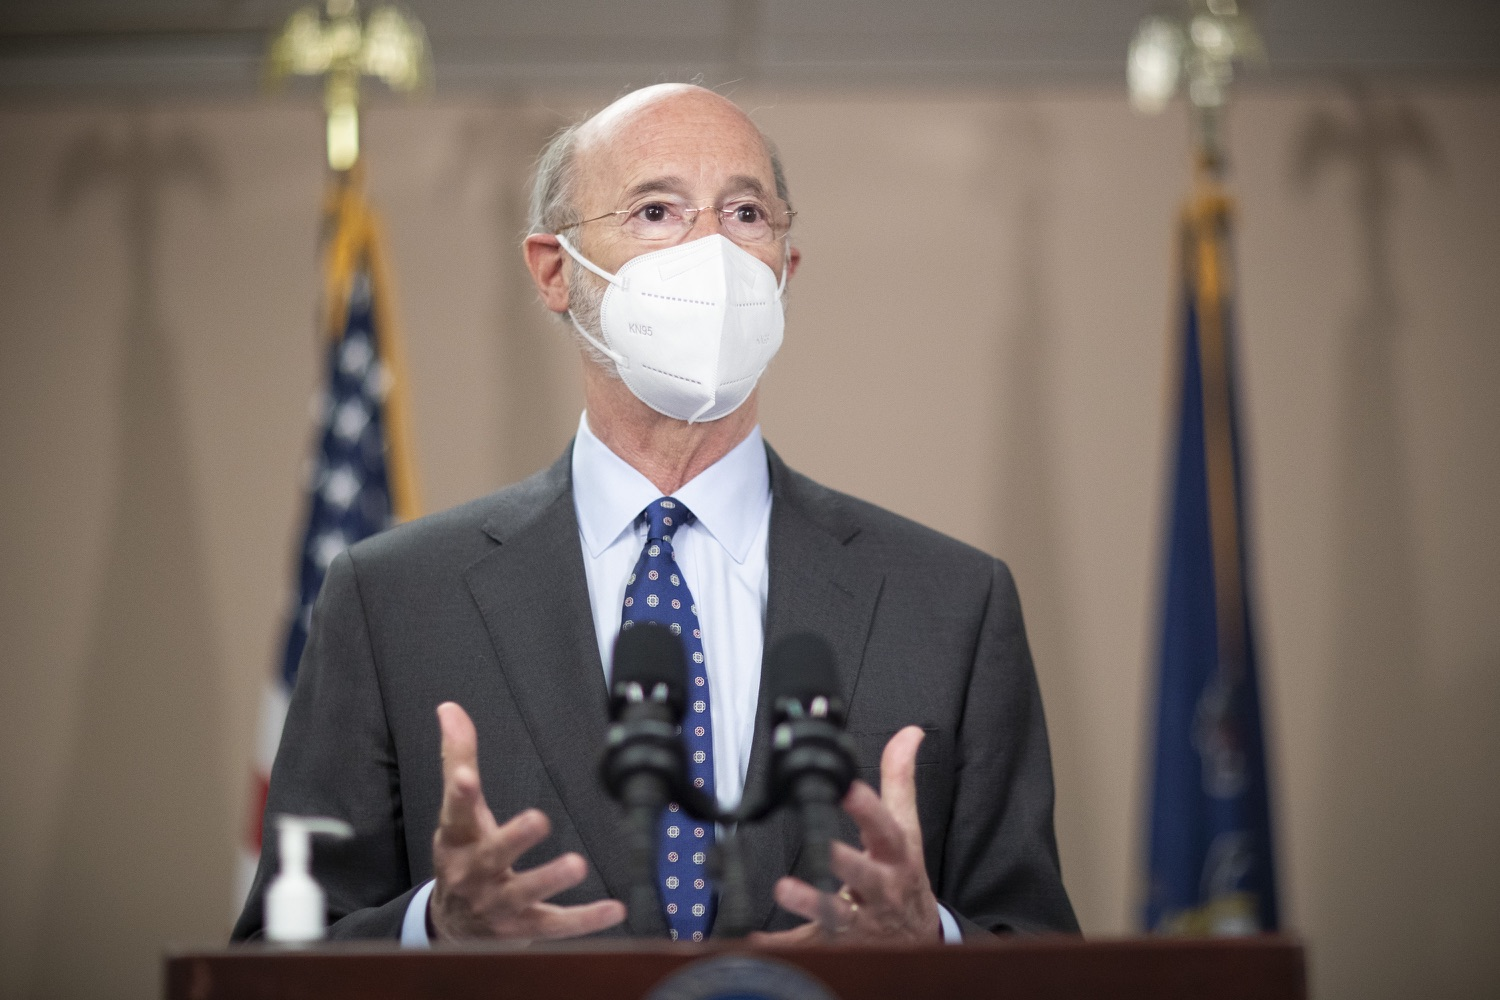 """<a href=""""https://filesource.wostreaming.net/commonwealthofpa/photo/18646_gov_vaccines_dz_003.jpg"""" target=""""_blank"""">⇣Download Photo<br></a>Pennsylvania Governor Tom Wolf speaking with the press.  After vaccinating more than 112,500 teachers and school staff in only about three weeks, Governor Tom Wolf visited Luzerne County today to announce the special vaccination initiative is a success and was completed ahead of schedule. The accomplishment is an important step to help more students and teachers safely return to classrooms across the state.  Kingston, PA - April 2, 2021"""